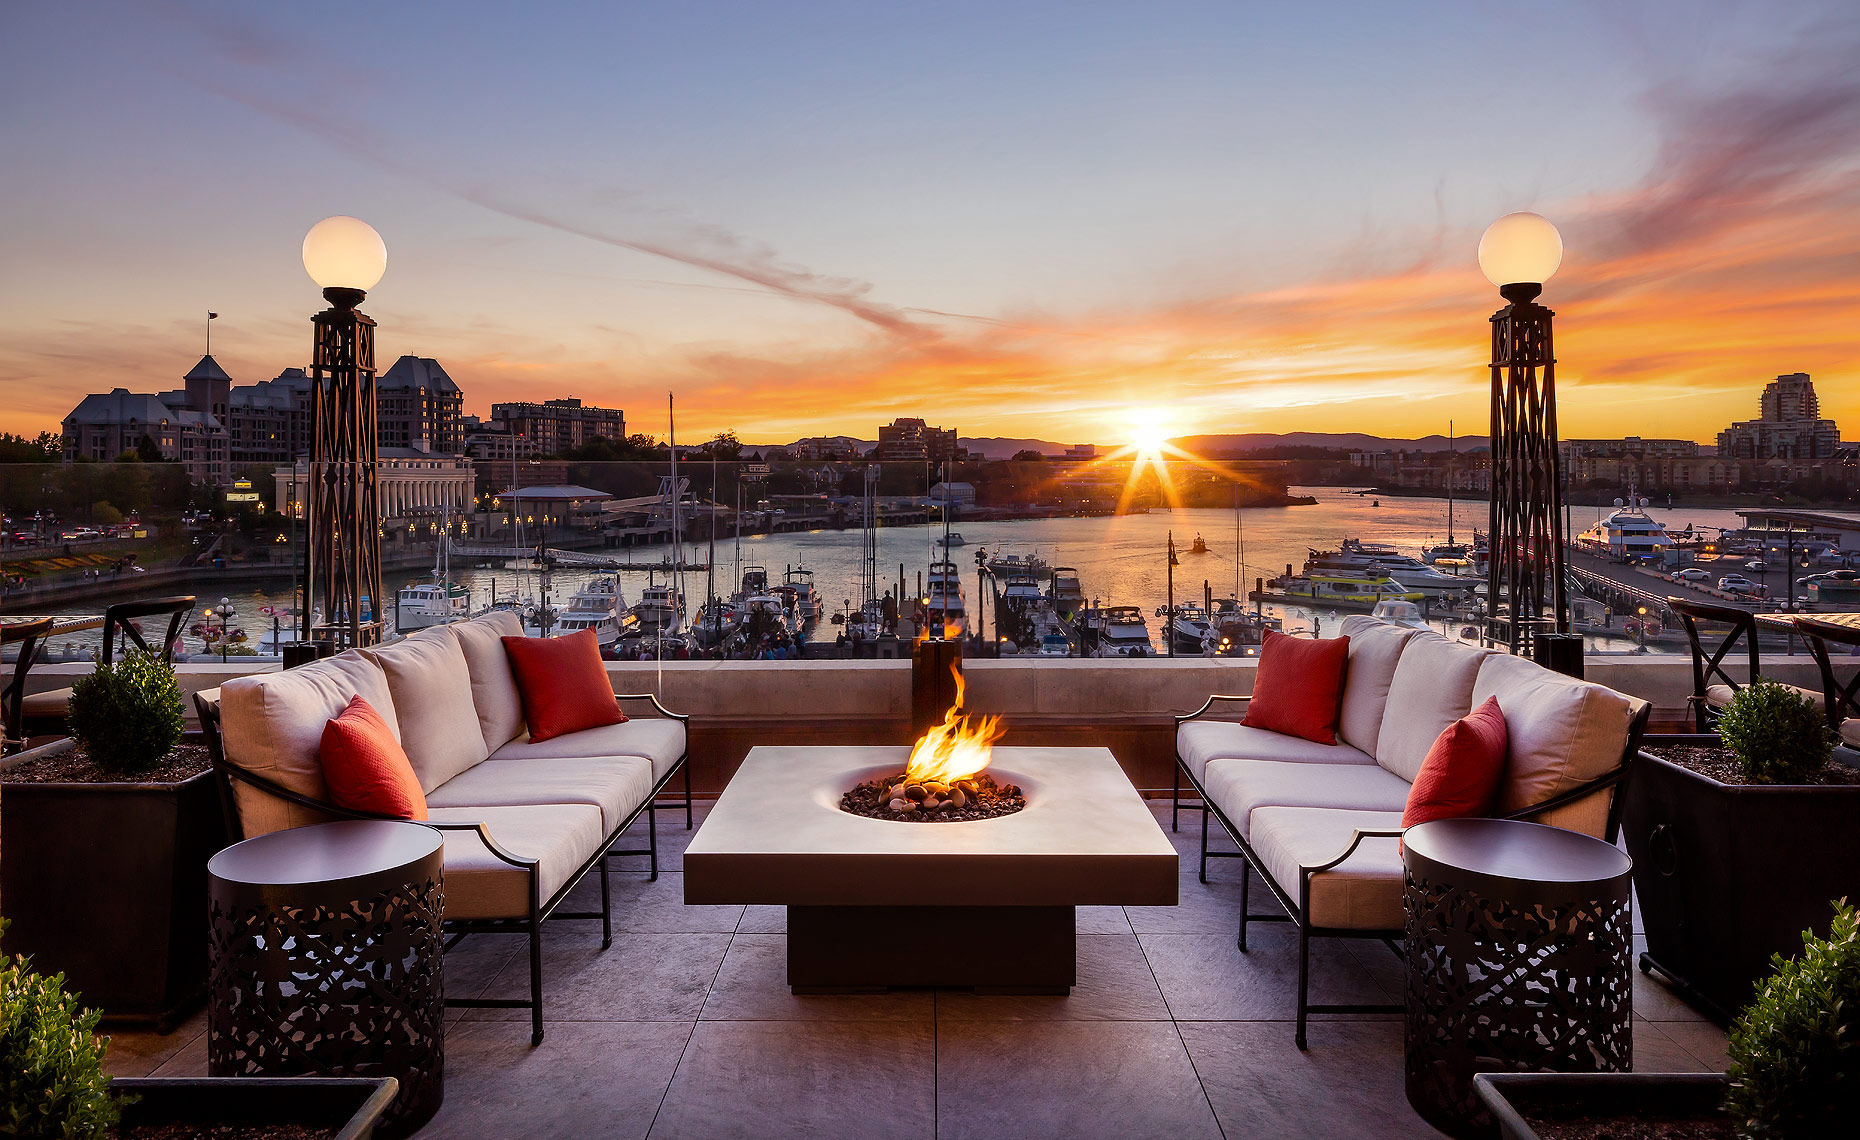 Fairmont Empress Hotel Victoria, BC - Gold Lounge Terrace sunset